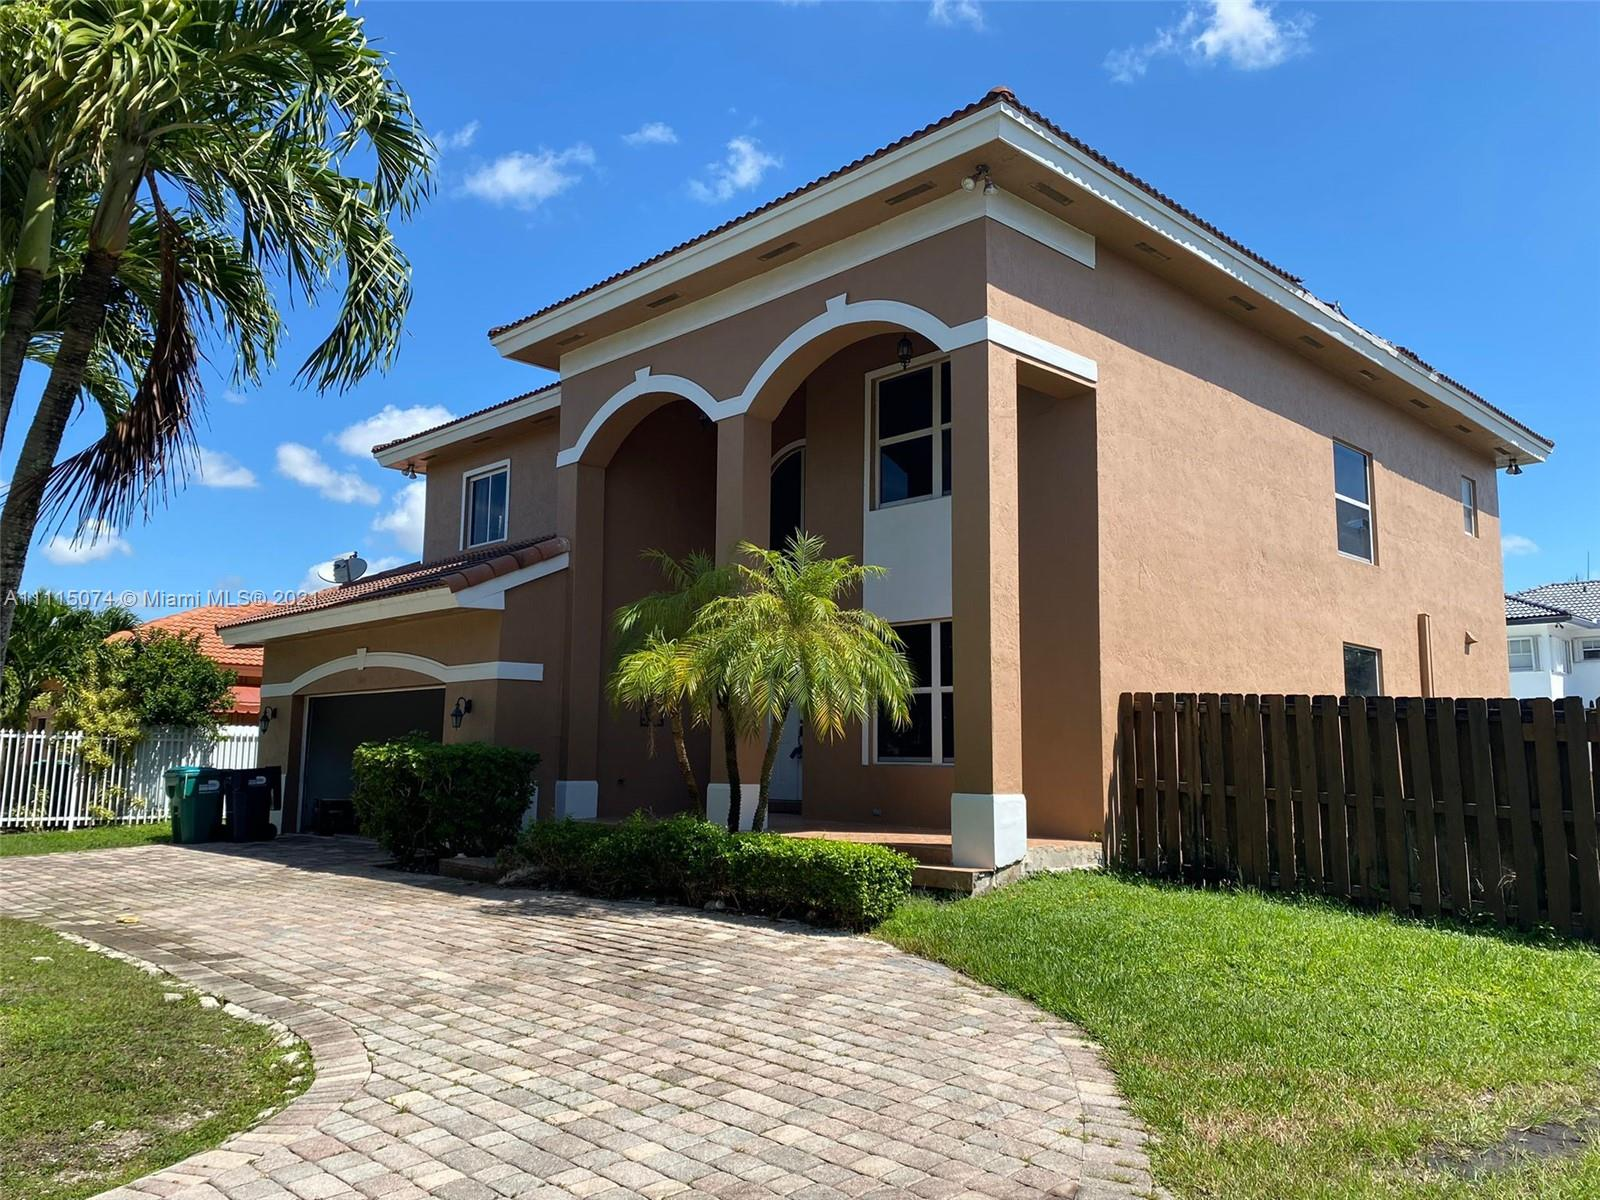 Single Family Home,For Rent,4605 SW 159th Ct, Miami, Florida 33185,Brickell,realty,broker,condos near me